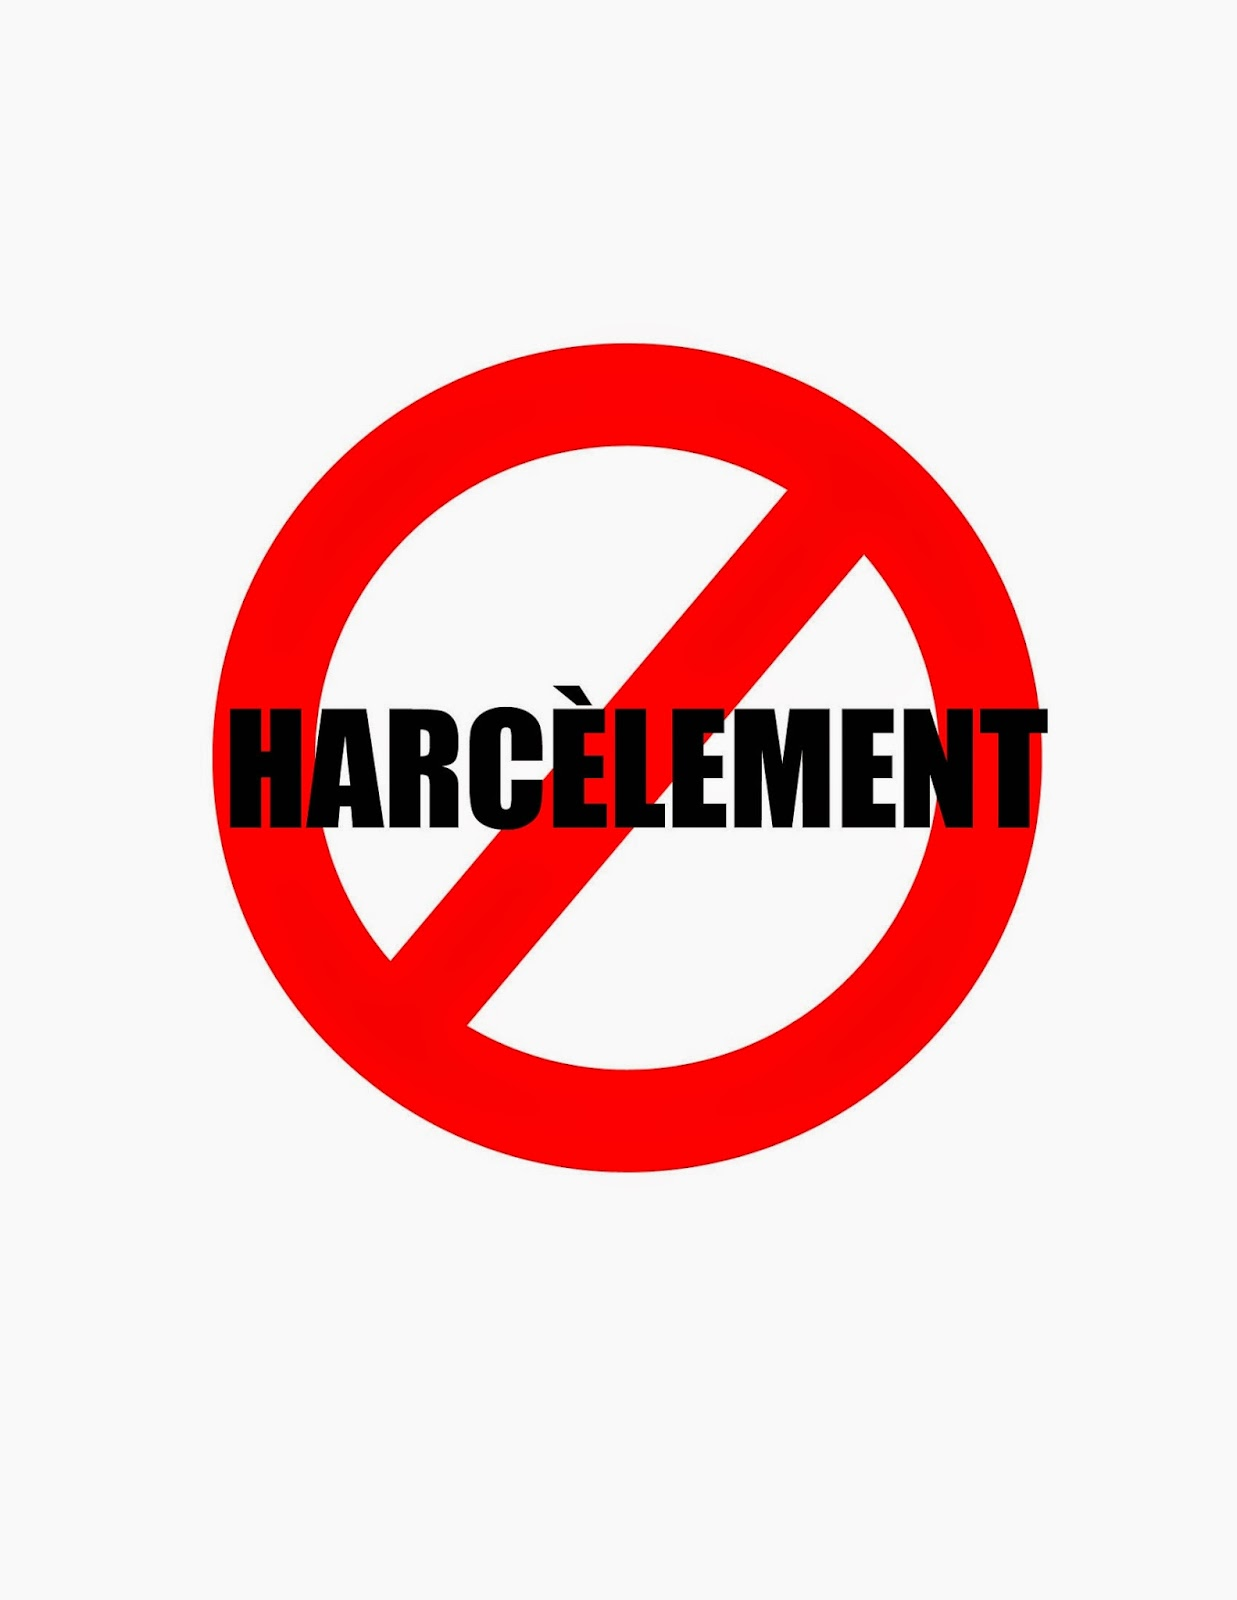 Image result for harcelement